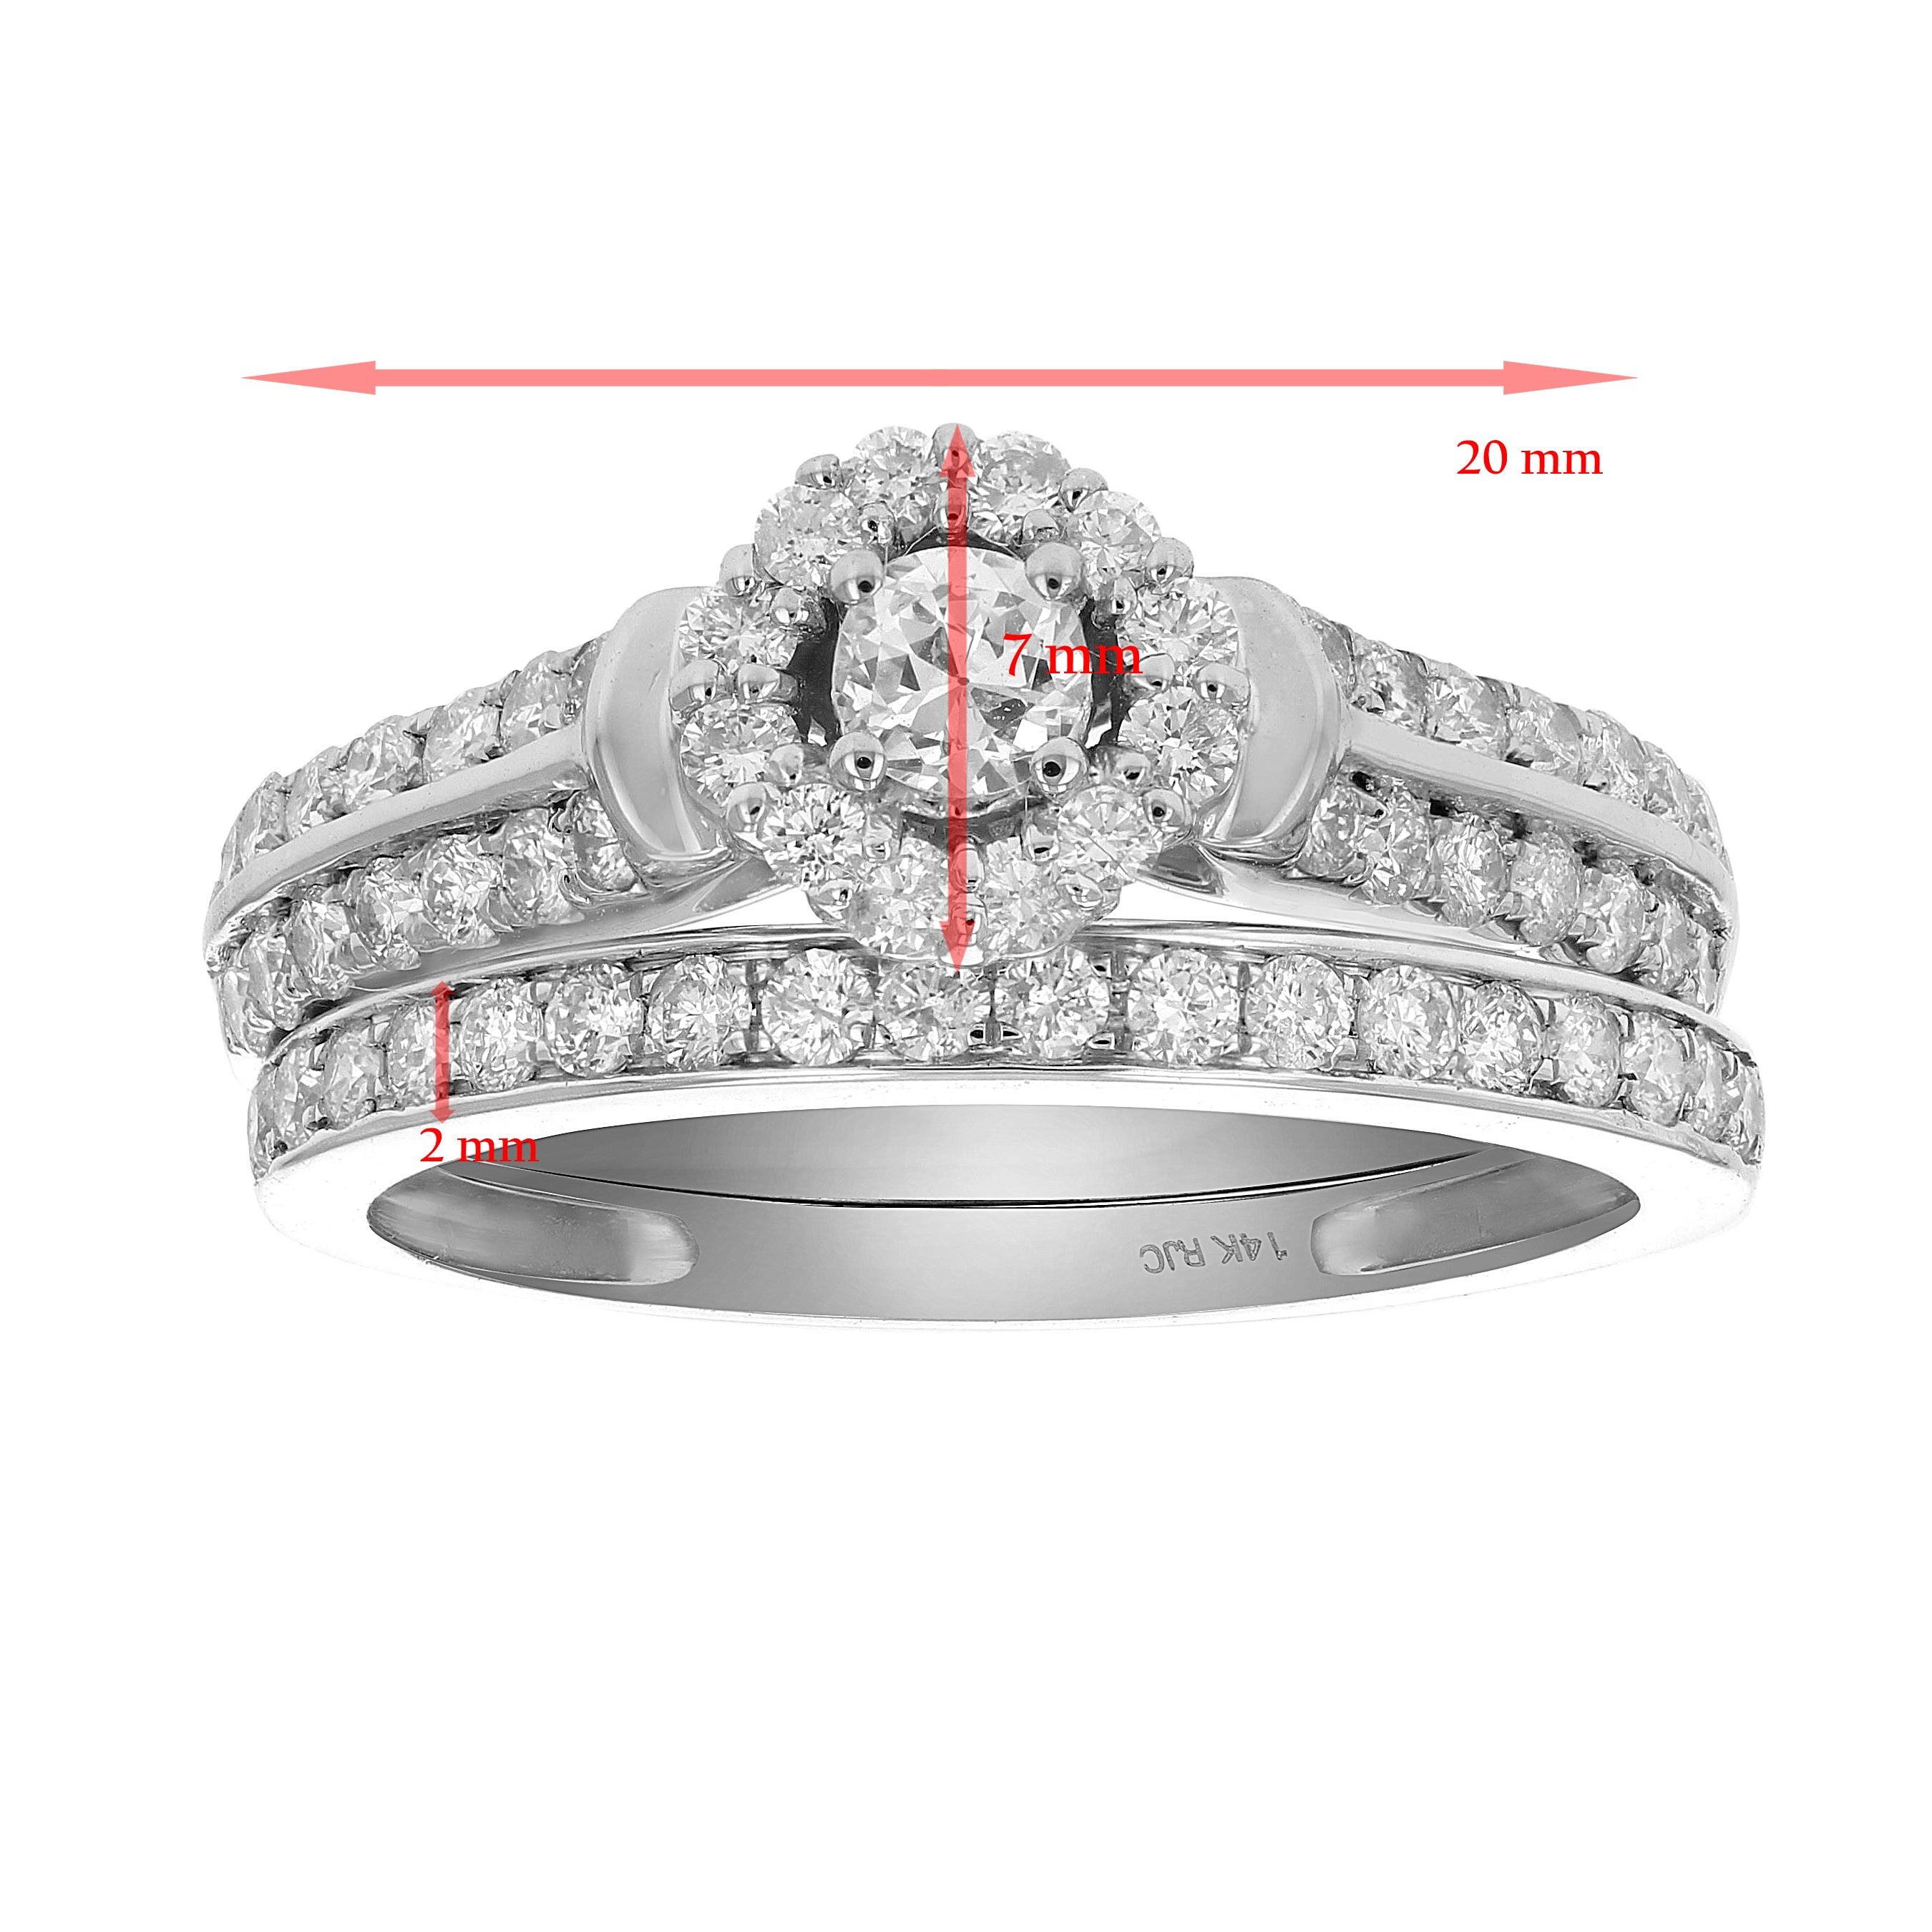 ring id rings jewelry diamond engagement veg at platinum j carat sale for master fd